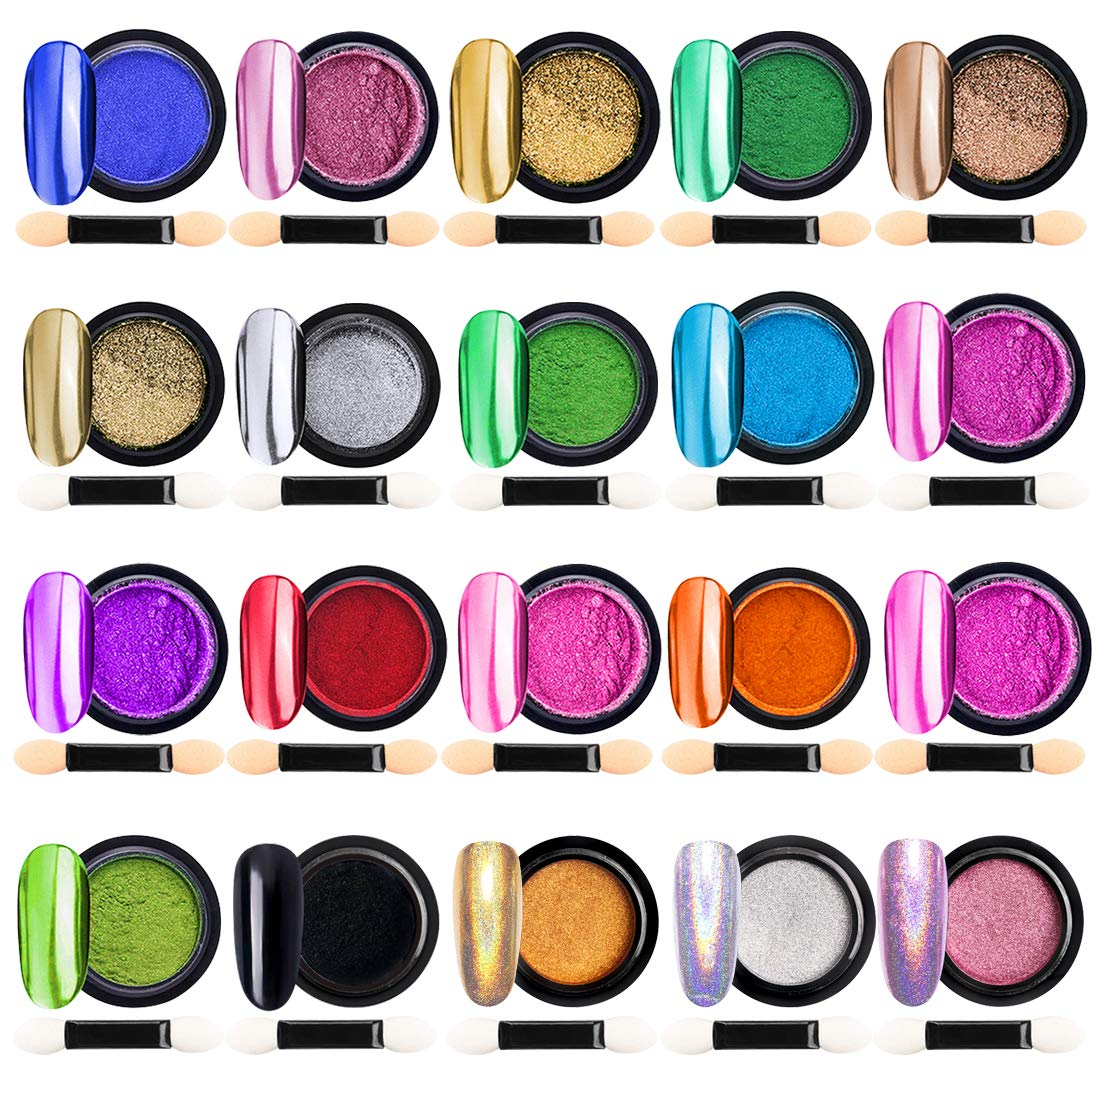 Chrome Nail Powder Metallic Nail Art Powder, Mirror Effect Manicure Pigment Laser Synthetic Resin Powder Colors Nail Powders Manicure Art Decoration with Eyeshadow Sticks – Never Peel Off (20)